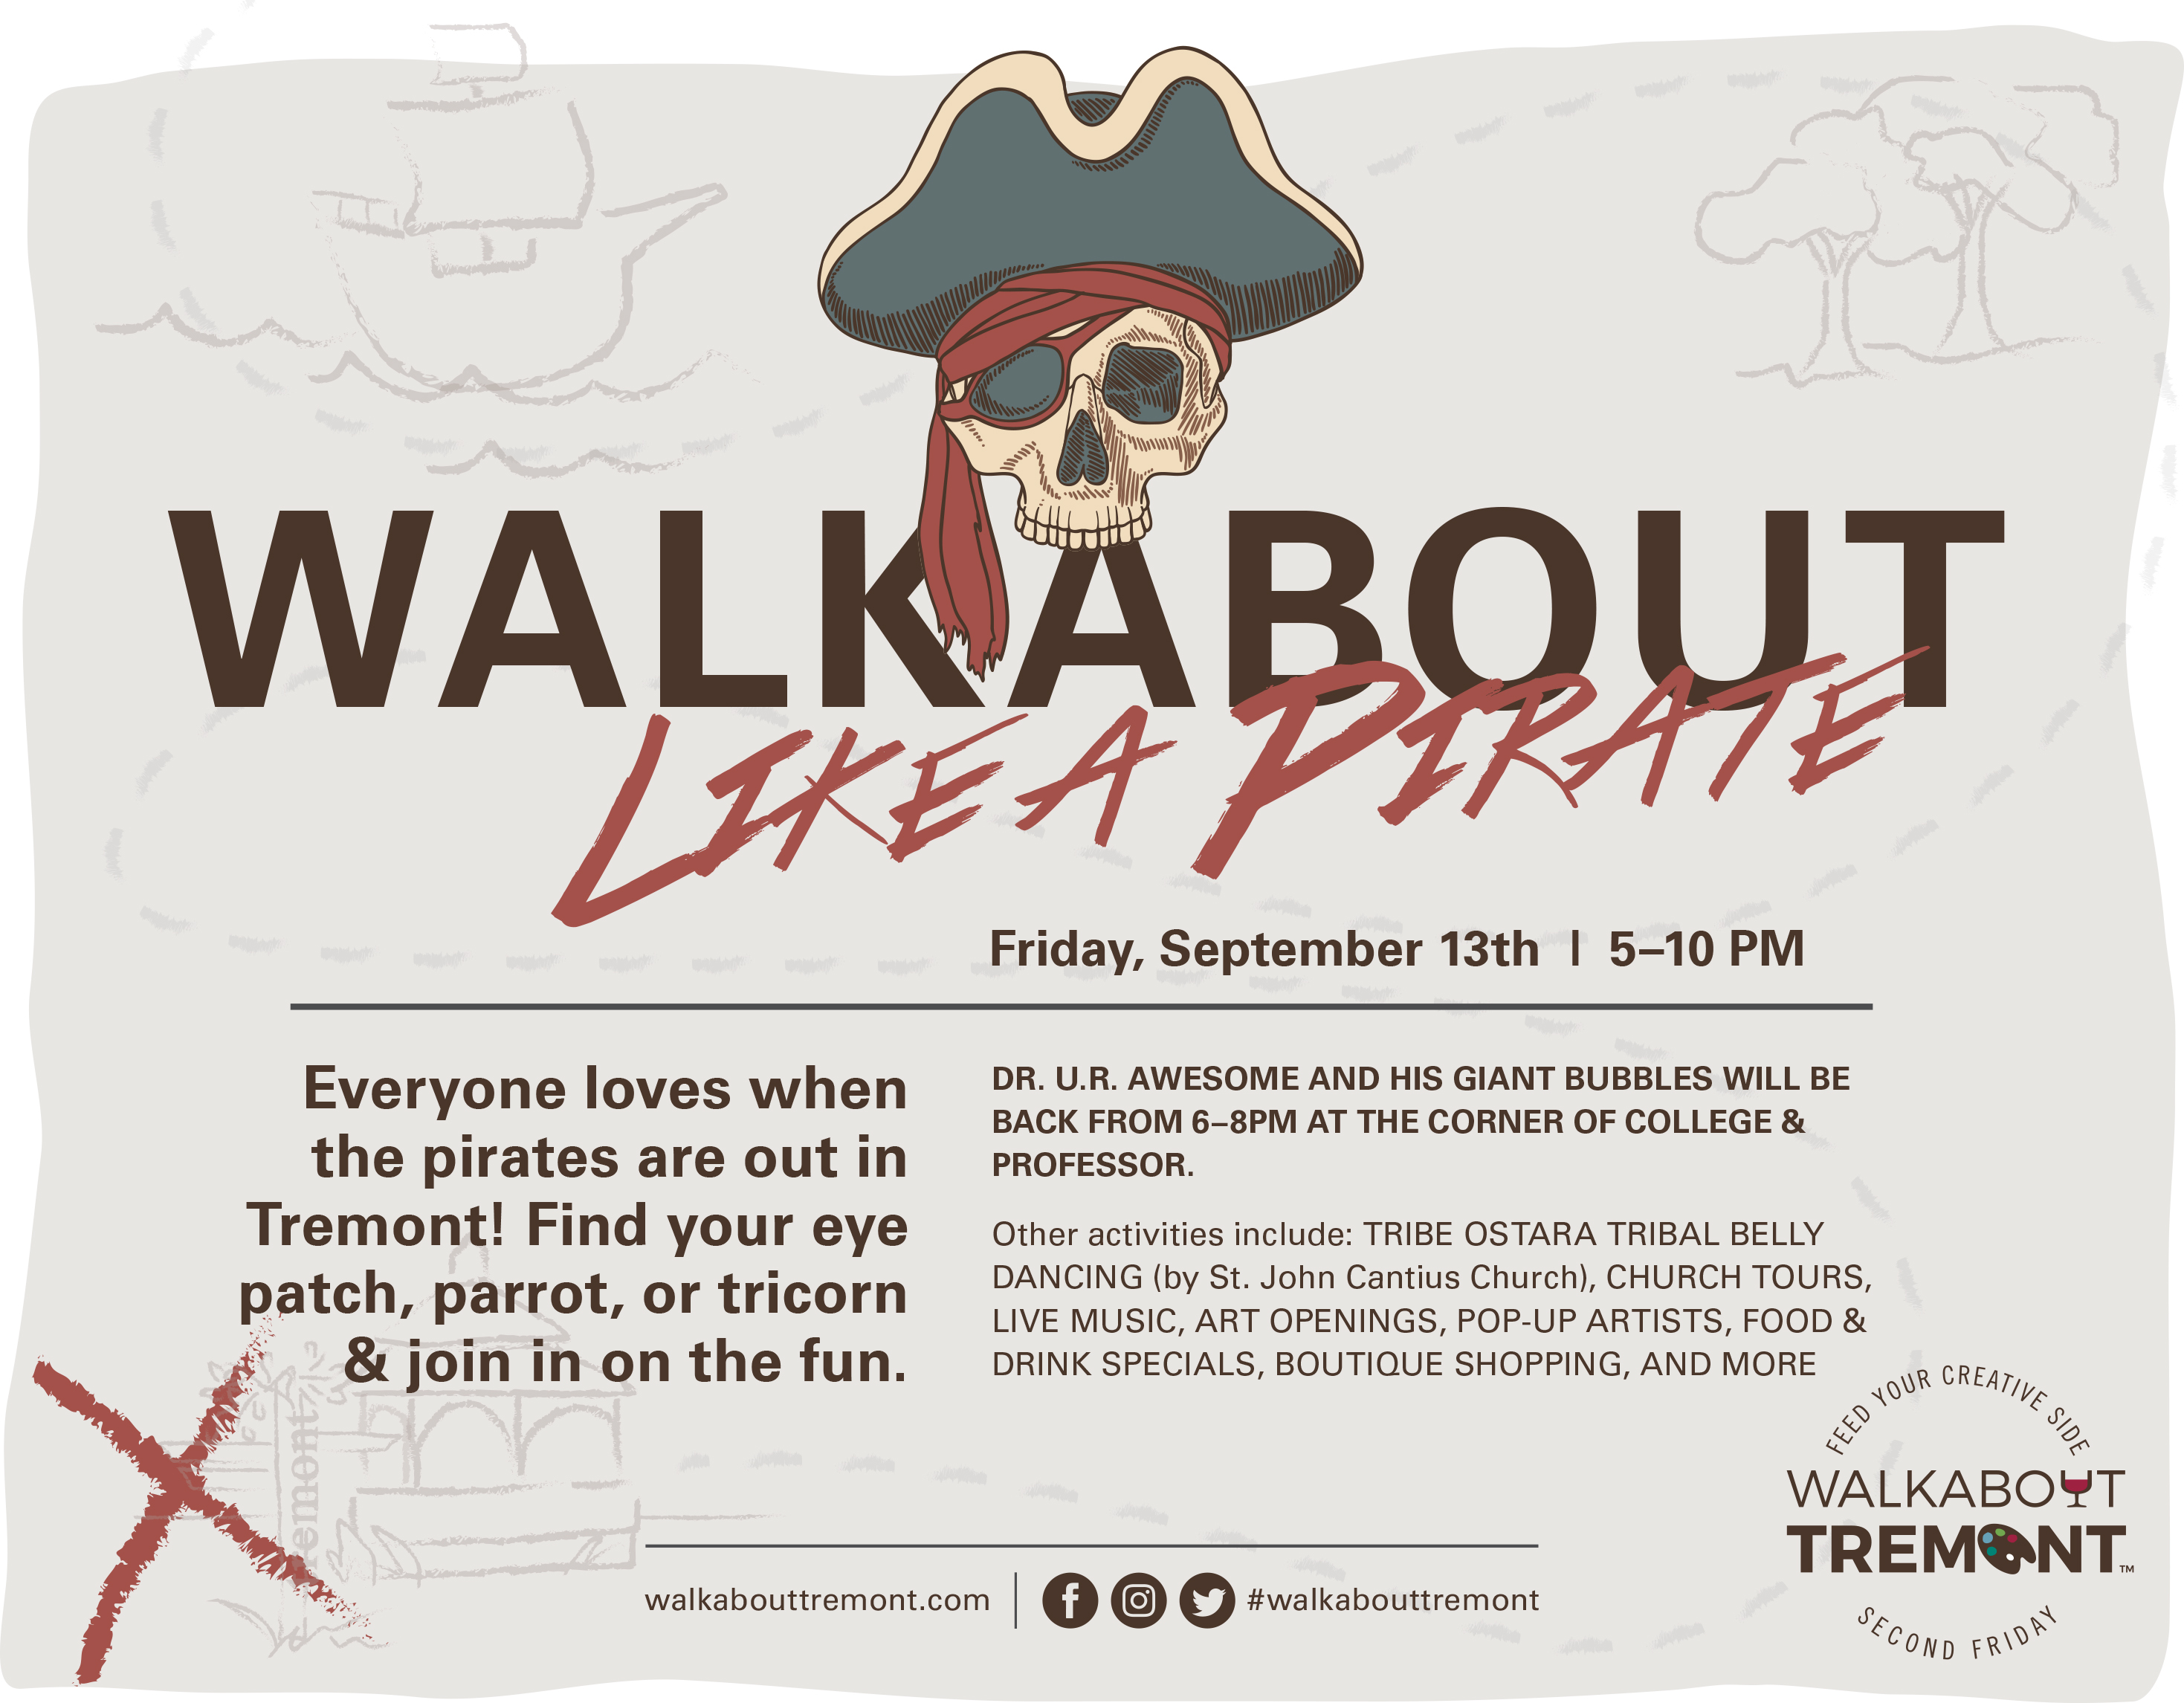 SEPTEMBER WALKABOUT TREMONT BRINGS UNTOLD TREASURES TO CLEVELAND